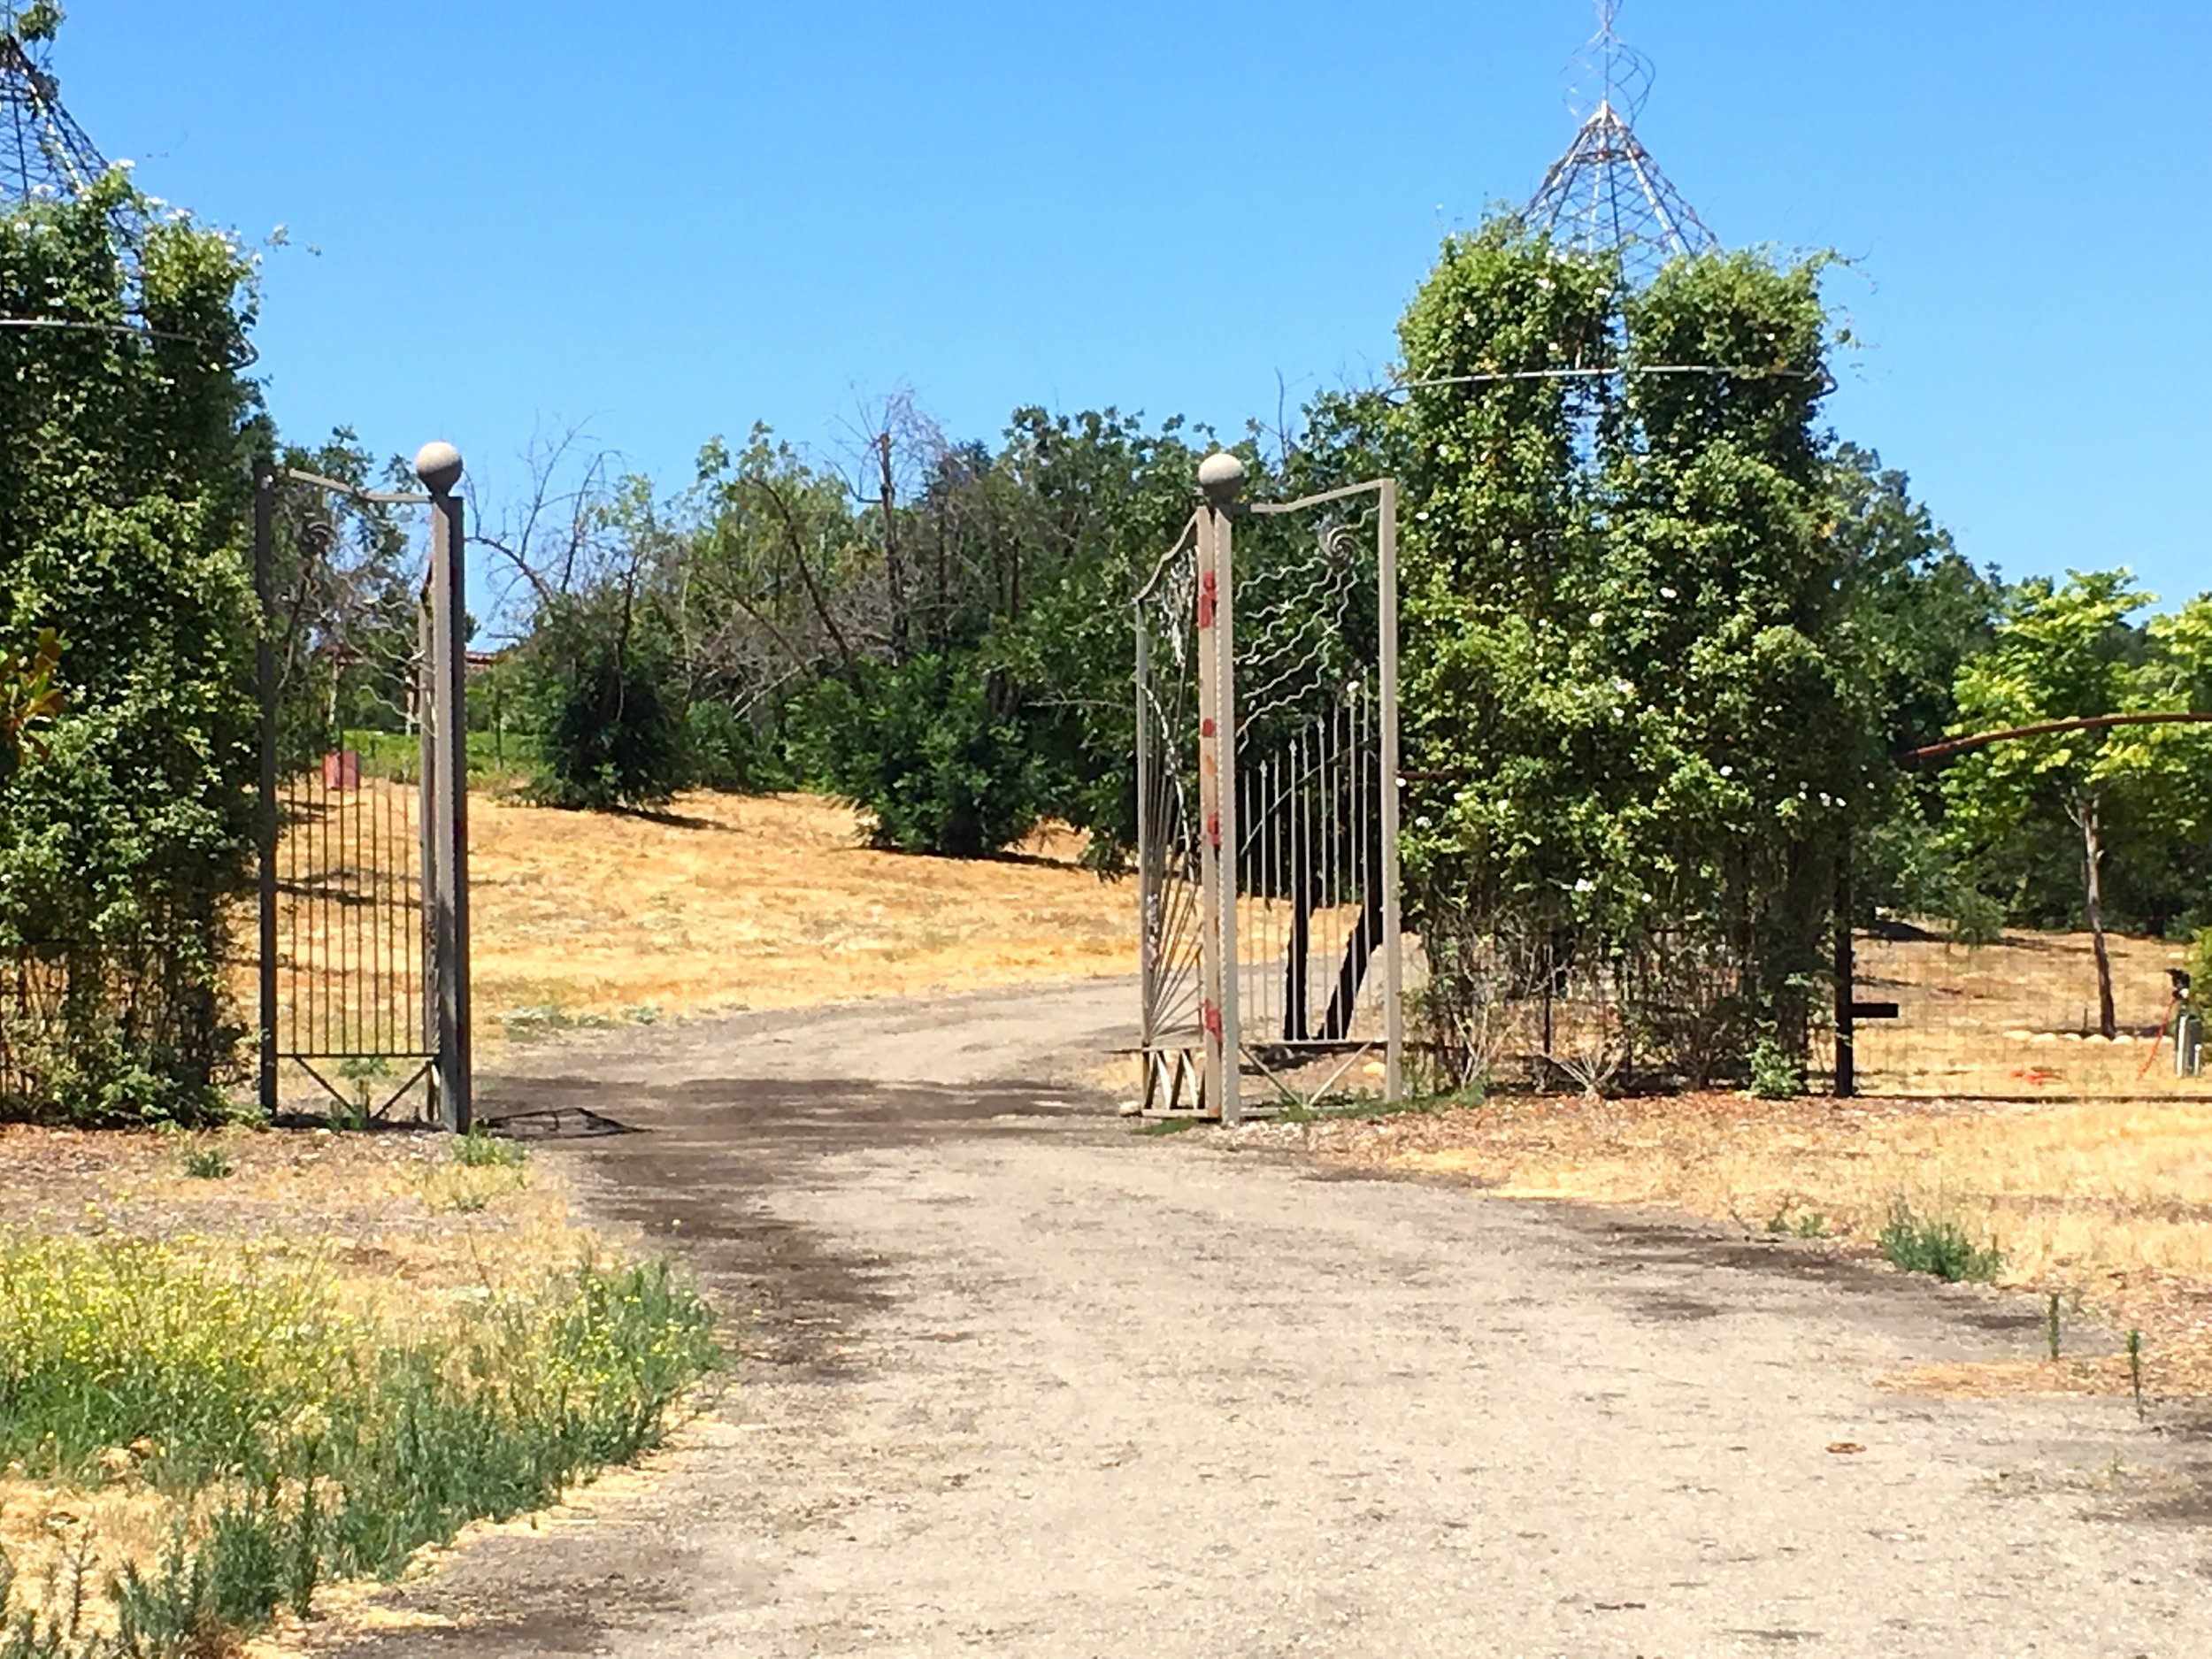 - Gates to the entrance of his property from Edward Scissorhand's movie.